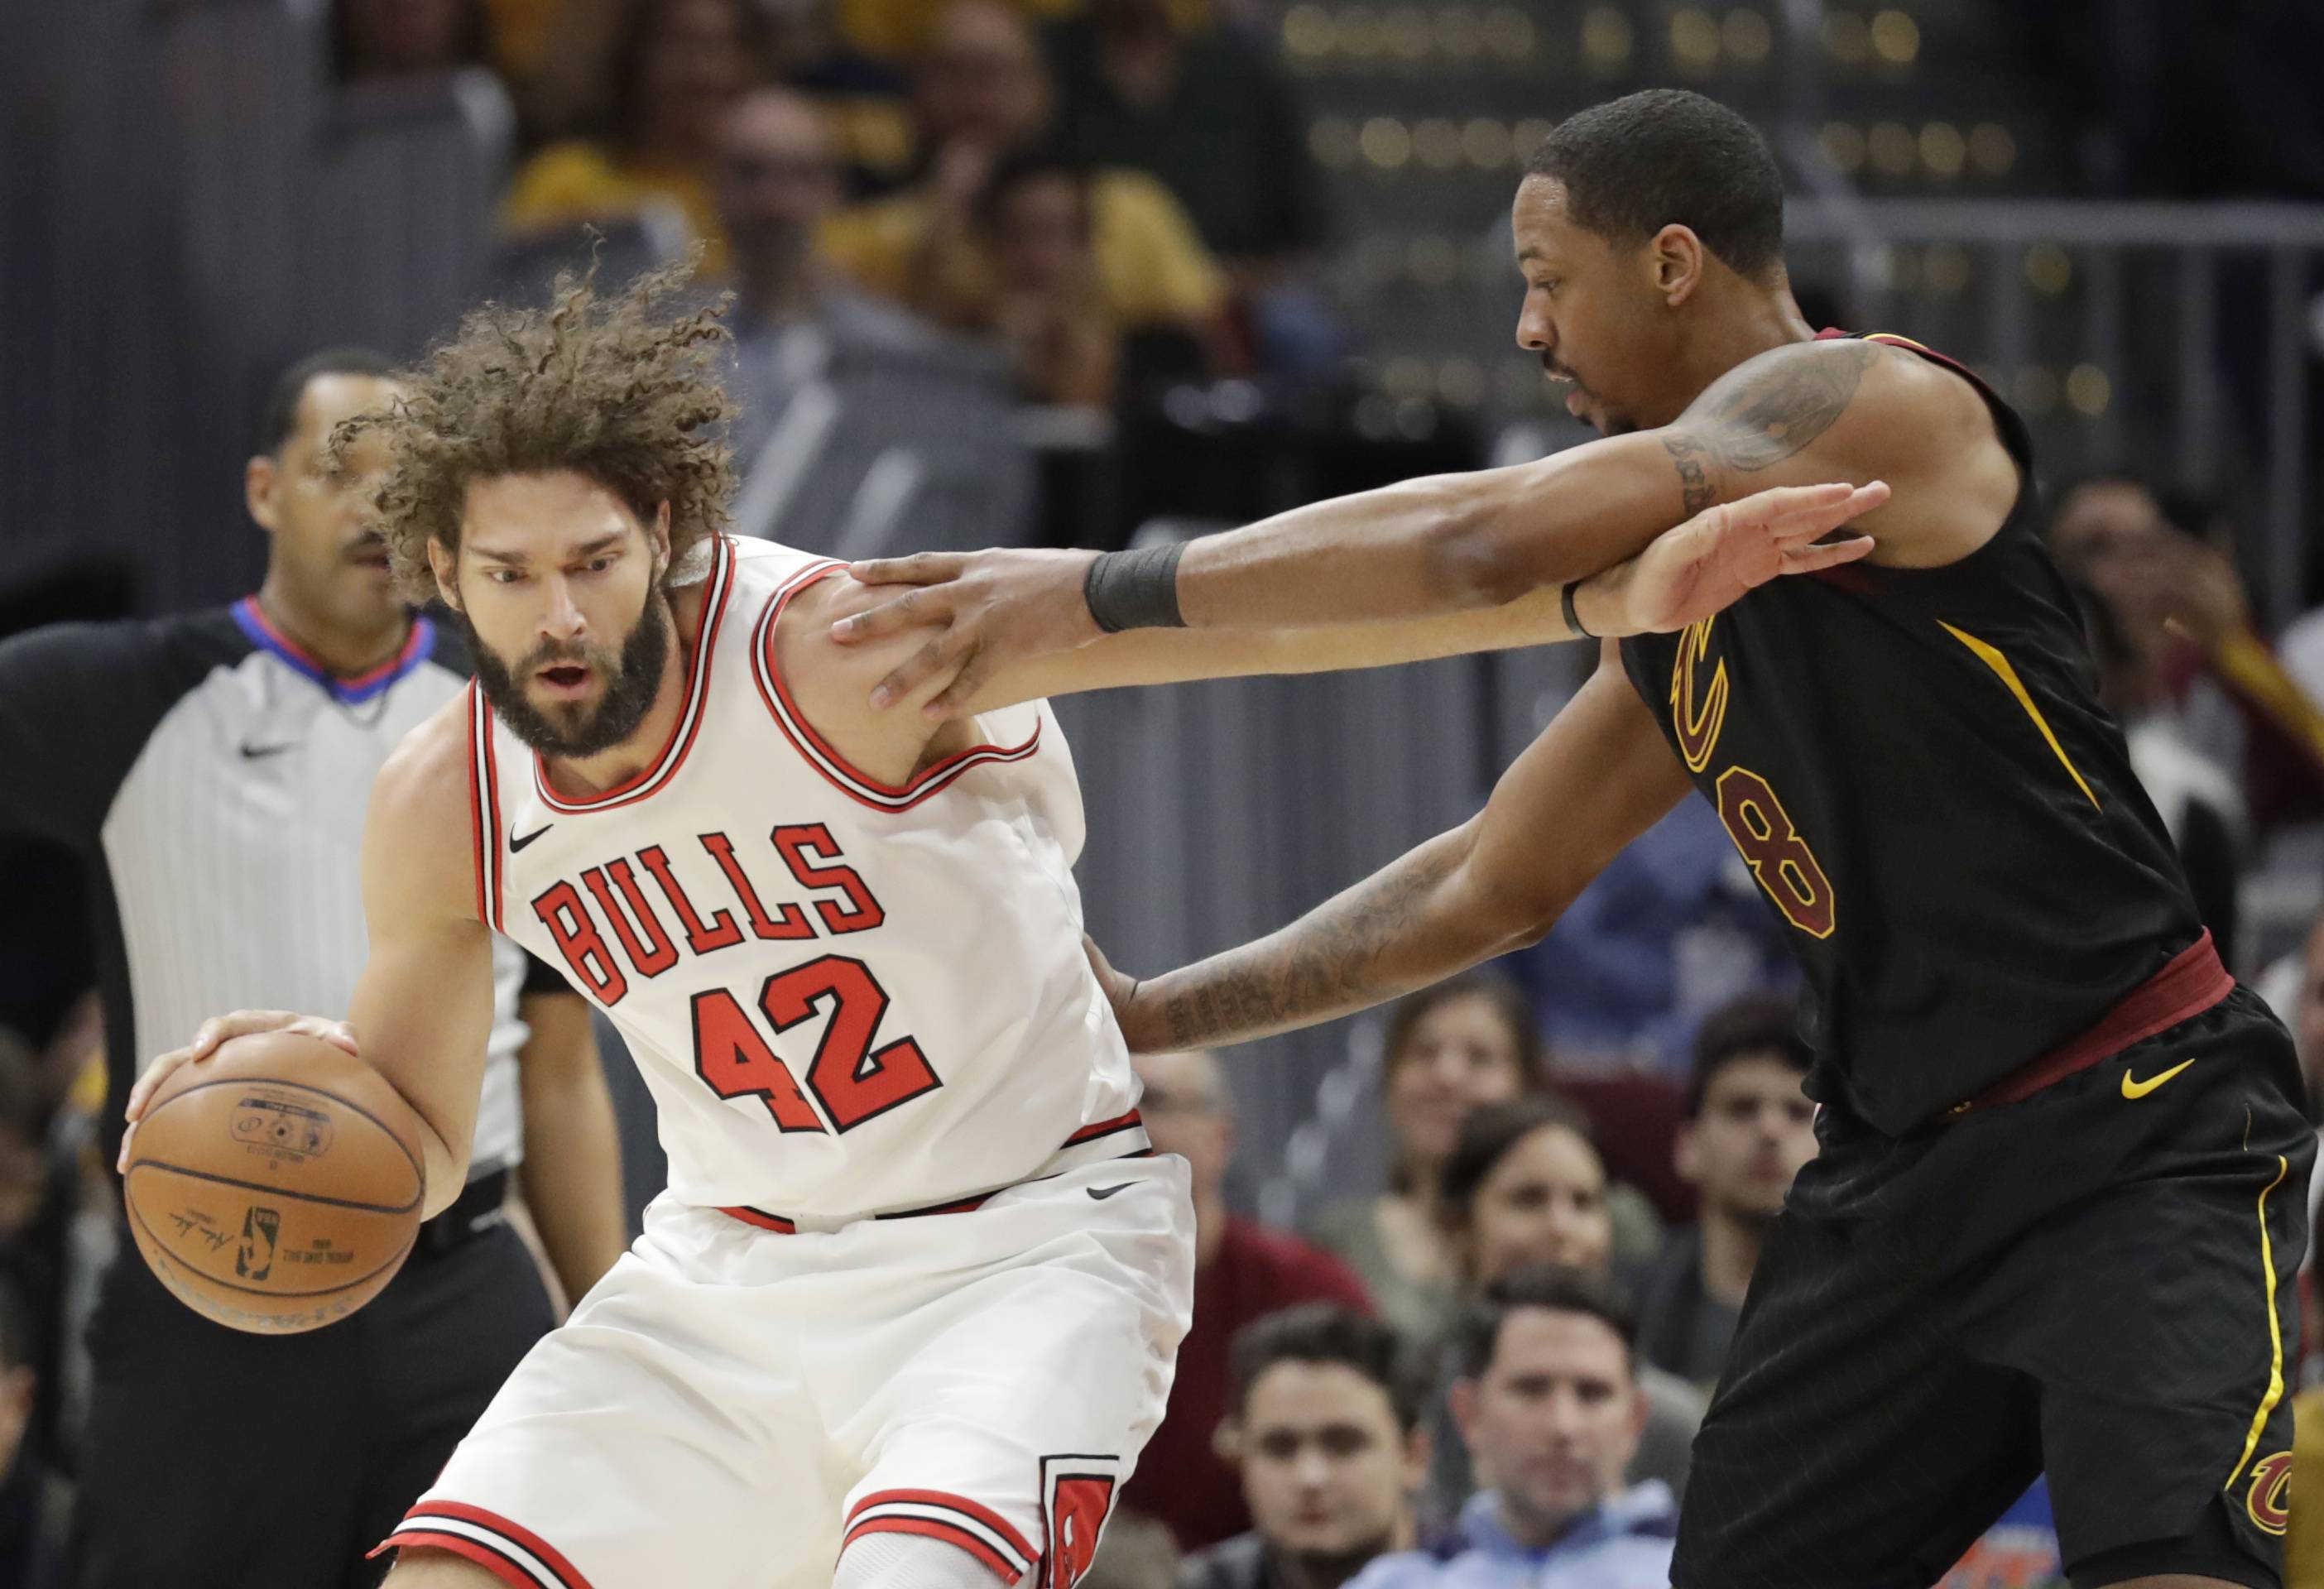 Chicago Bulls put up a good fight, but win streak ends in Cleveland